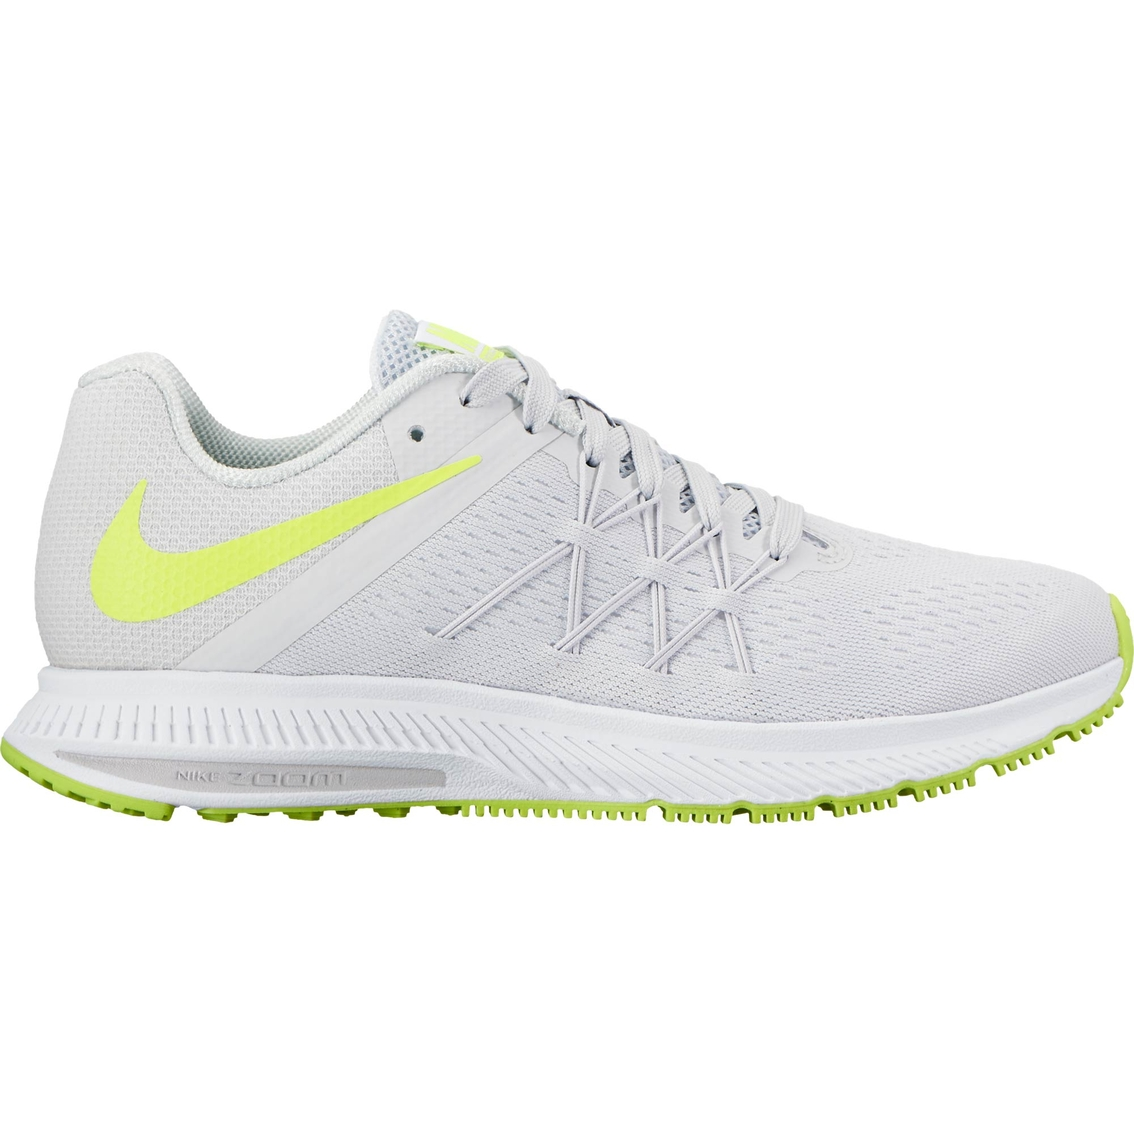 san francisco 10899 8d0f4 Nike Women's Zoom Winflo 3 Running Shoes | Running | Back To ...